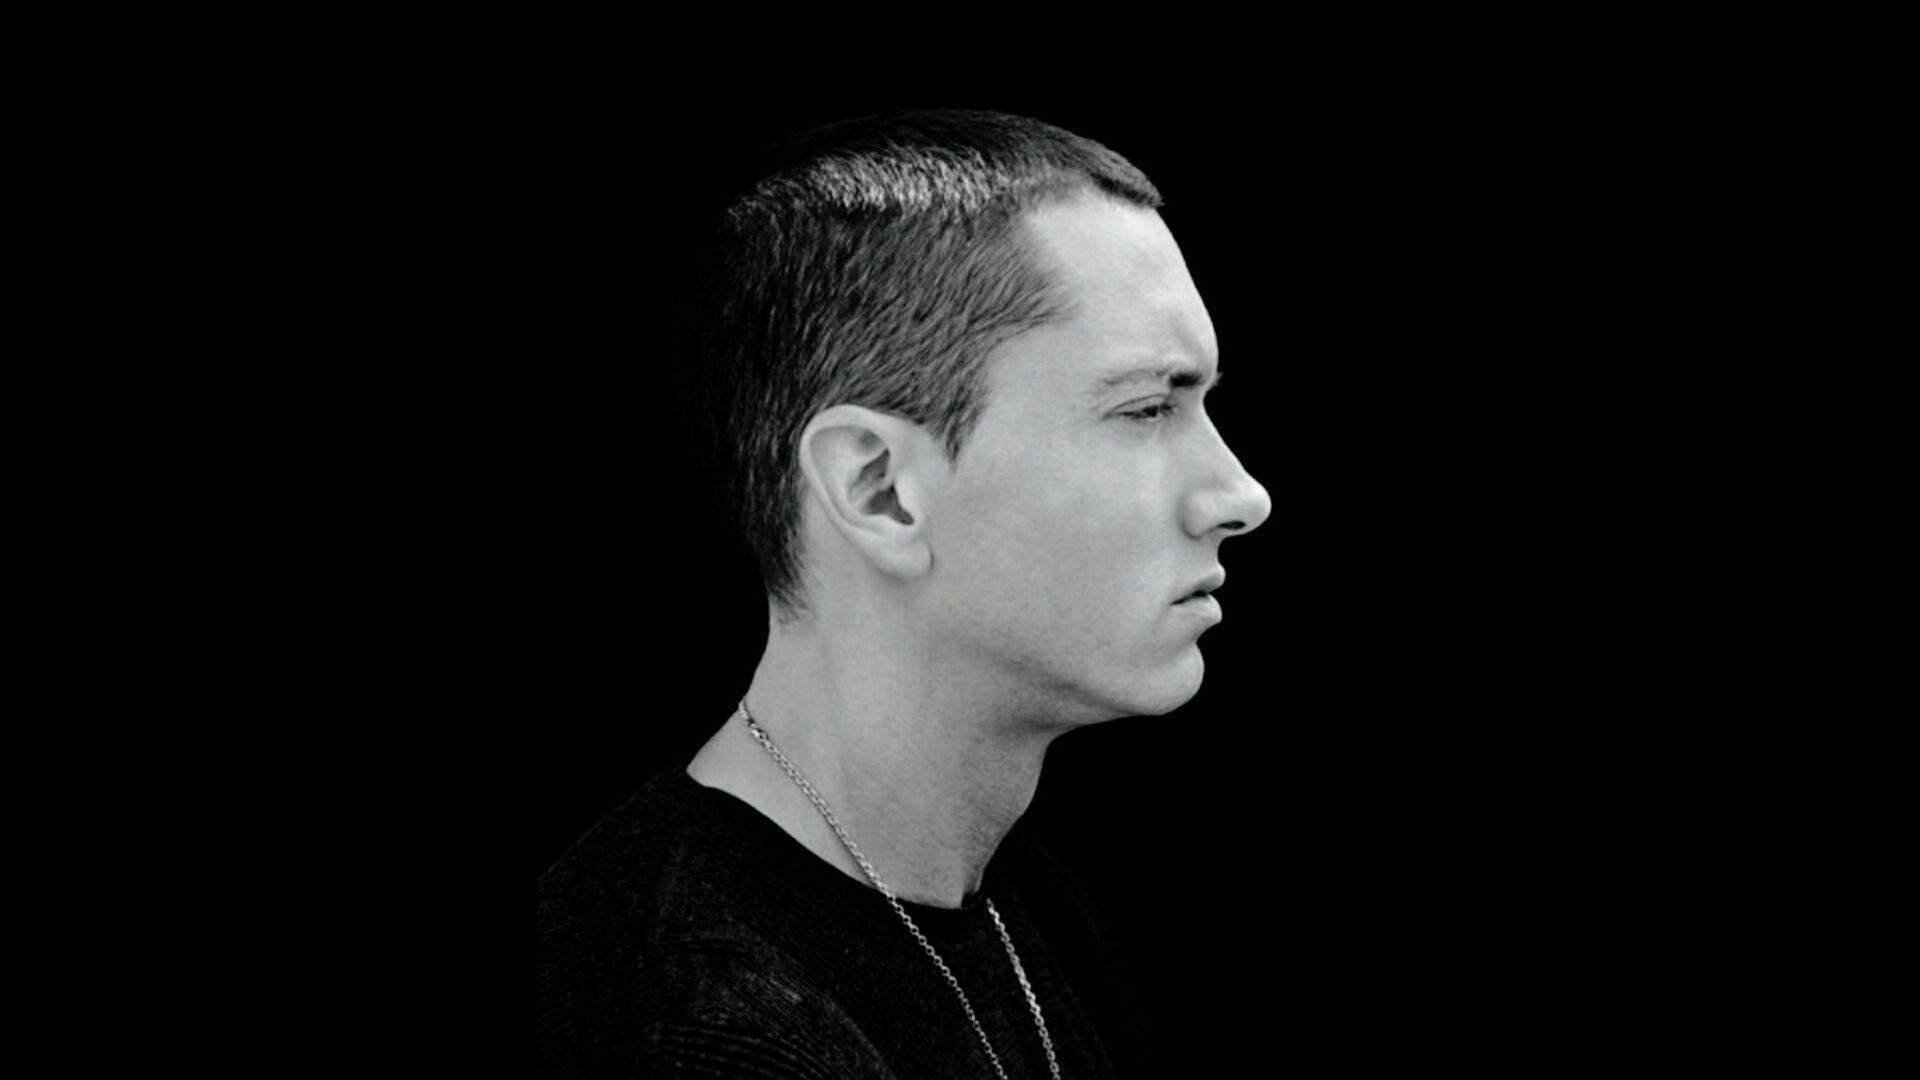 Eminem Wallpapers Backgrounds Free Download | Wallpapers ...